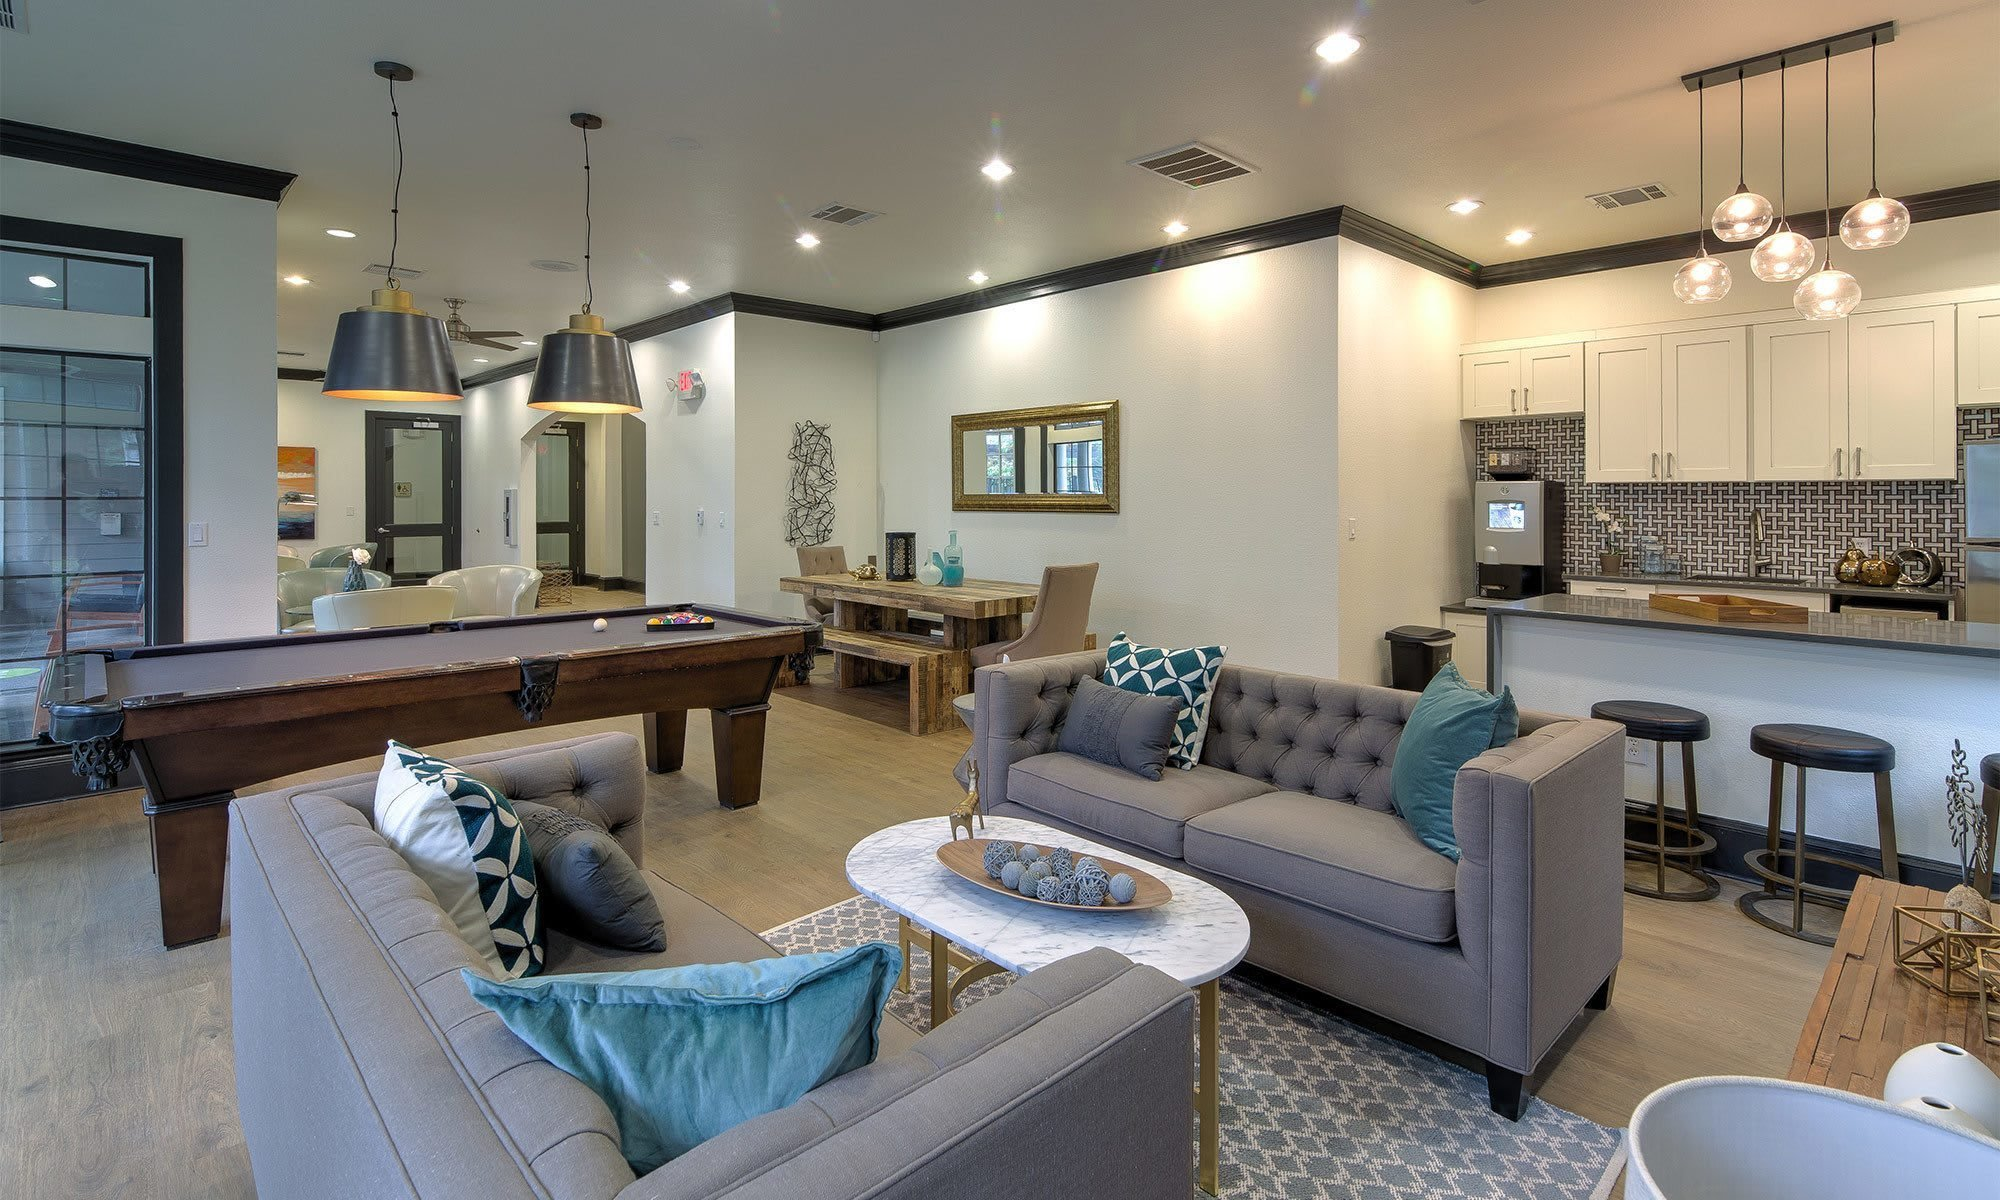 Best Fort Worth Tx Apartments For Rent In The Heart Of Keller With Pictures